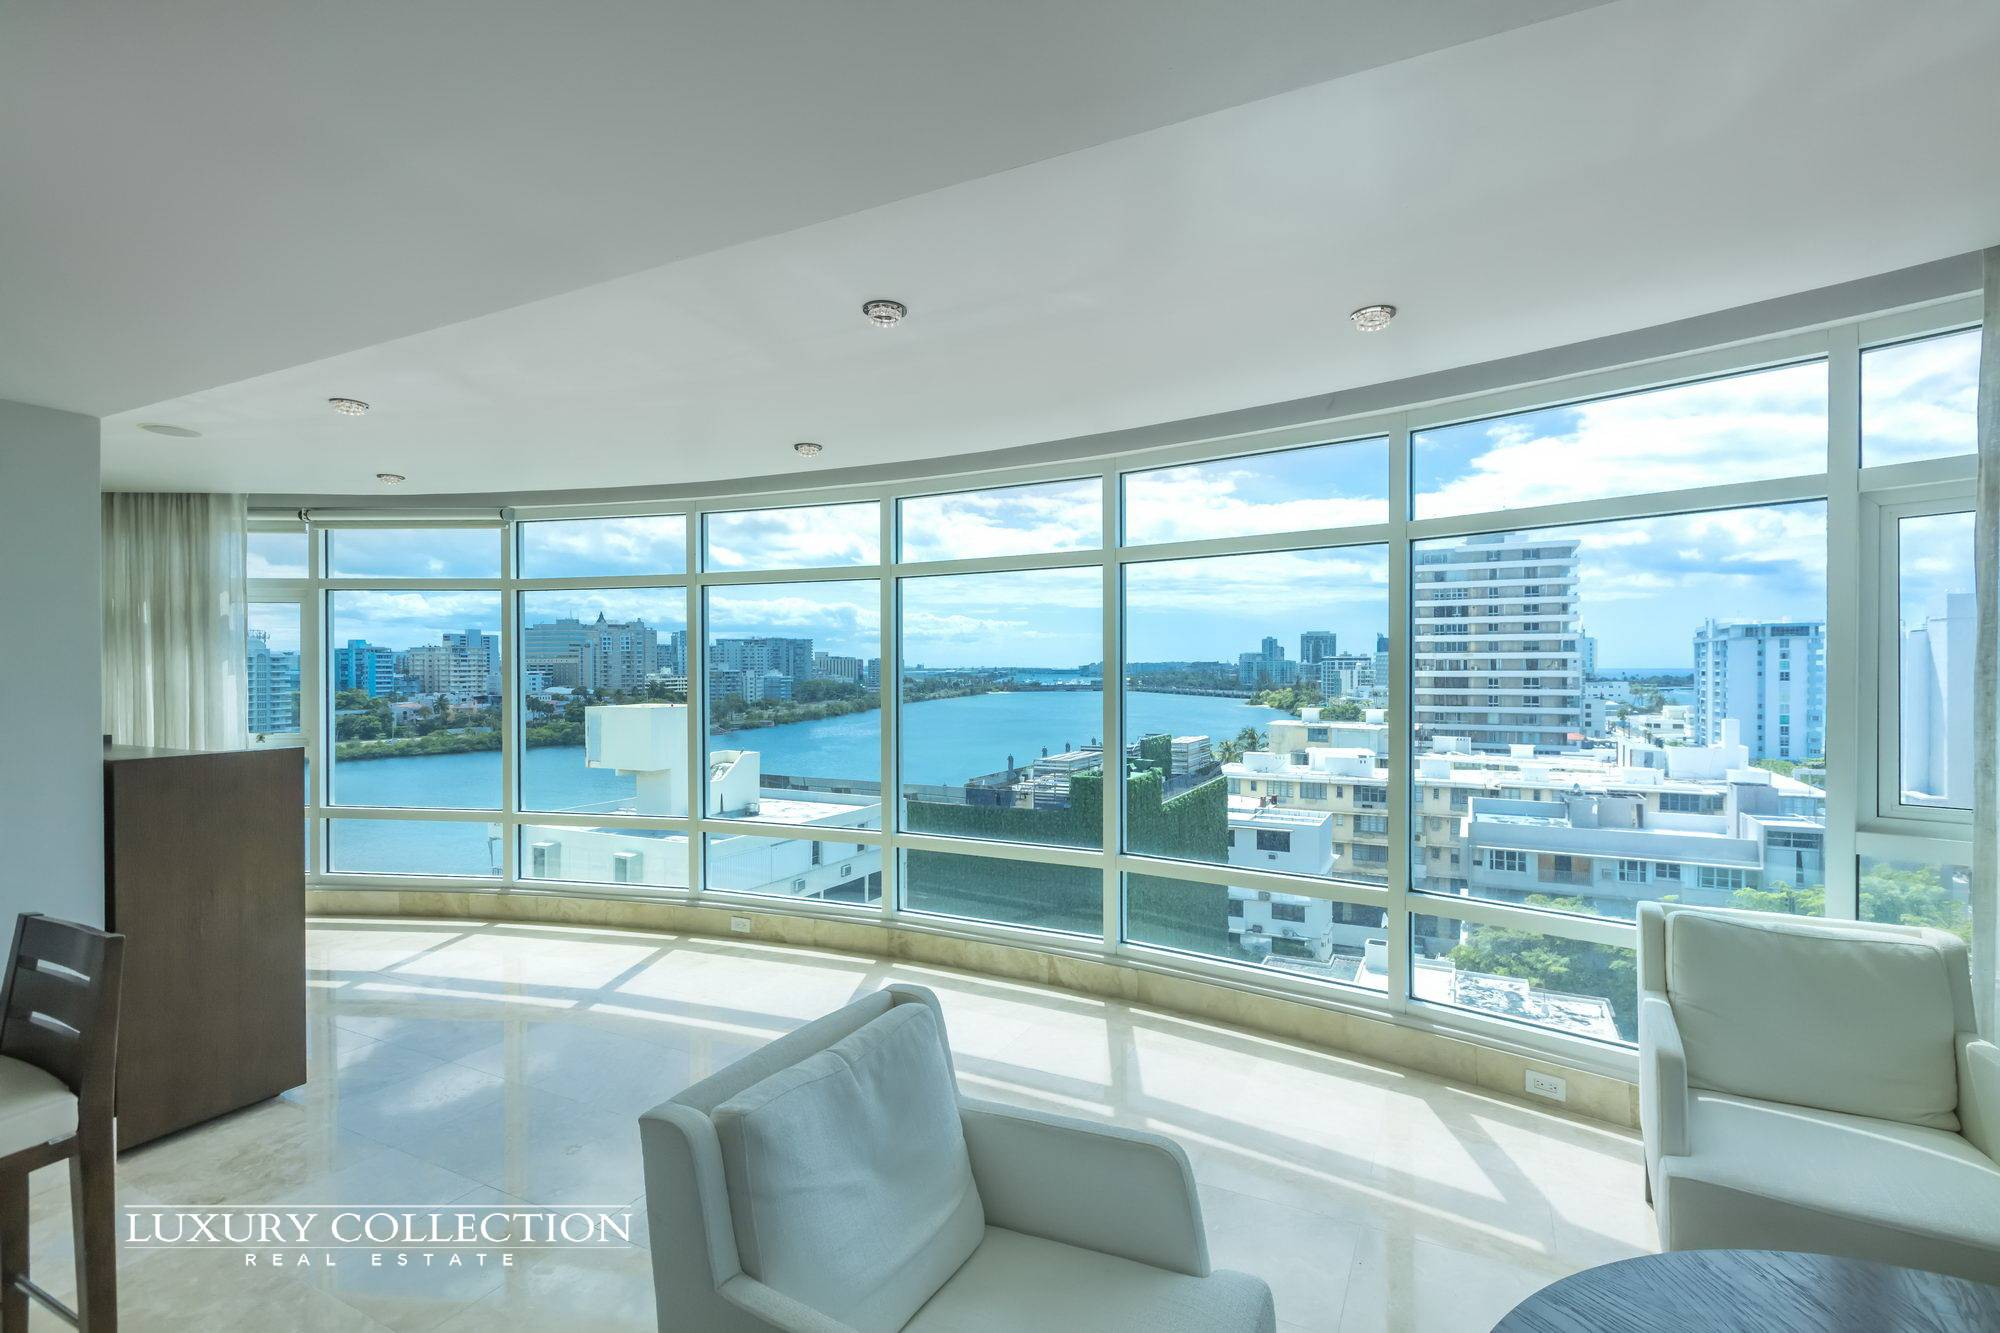 Luxury Collection Bristol high-floor ocean view apartment features stunning and dazzling views of the Condado Lagoon, city view and Atlantic Ocean